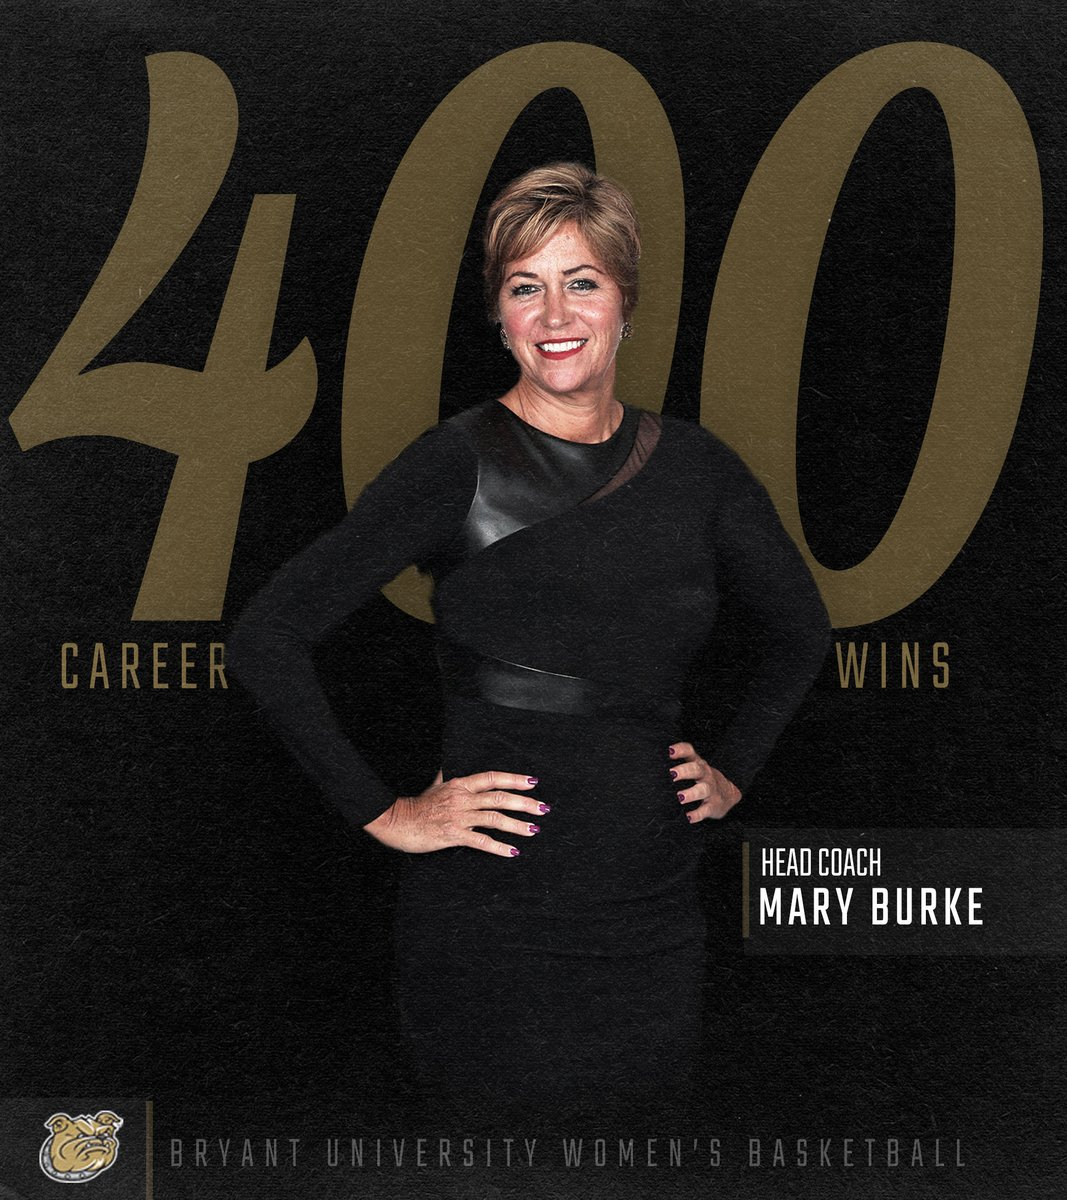 Congratulations to head coach Mary Burke on achieving her 400th career win tonight at LIU Brooklyn!  #AllHeart | #AllHustle | #NECWBB